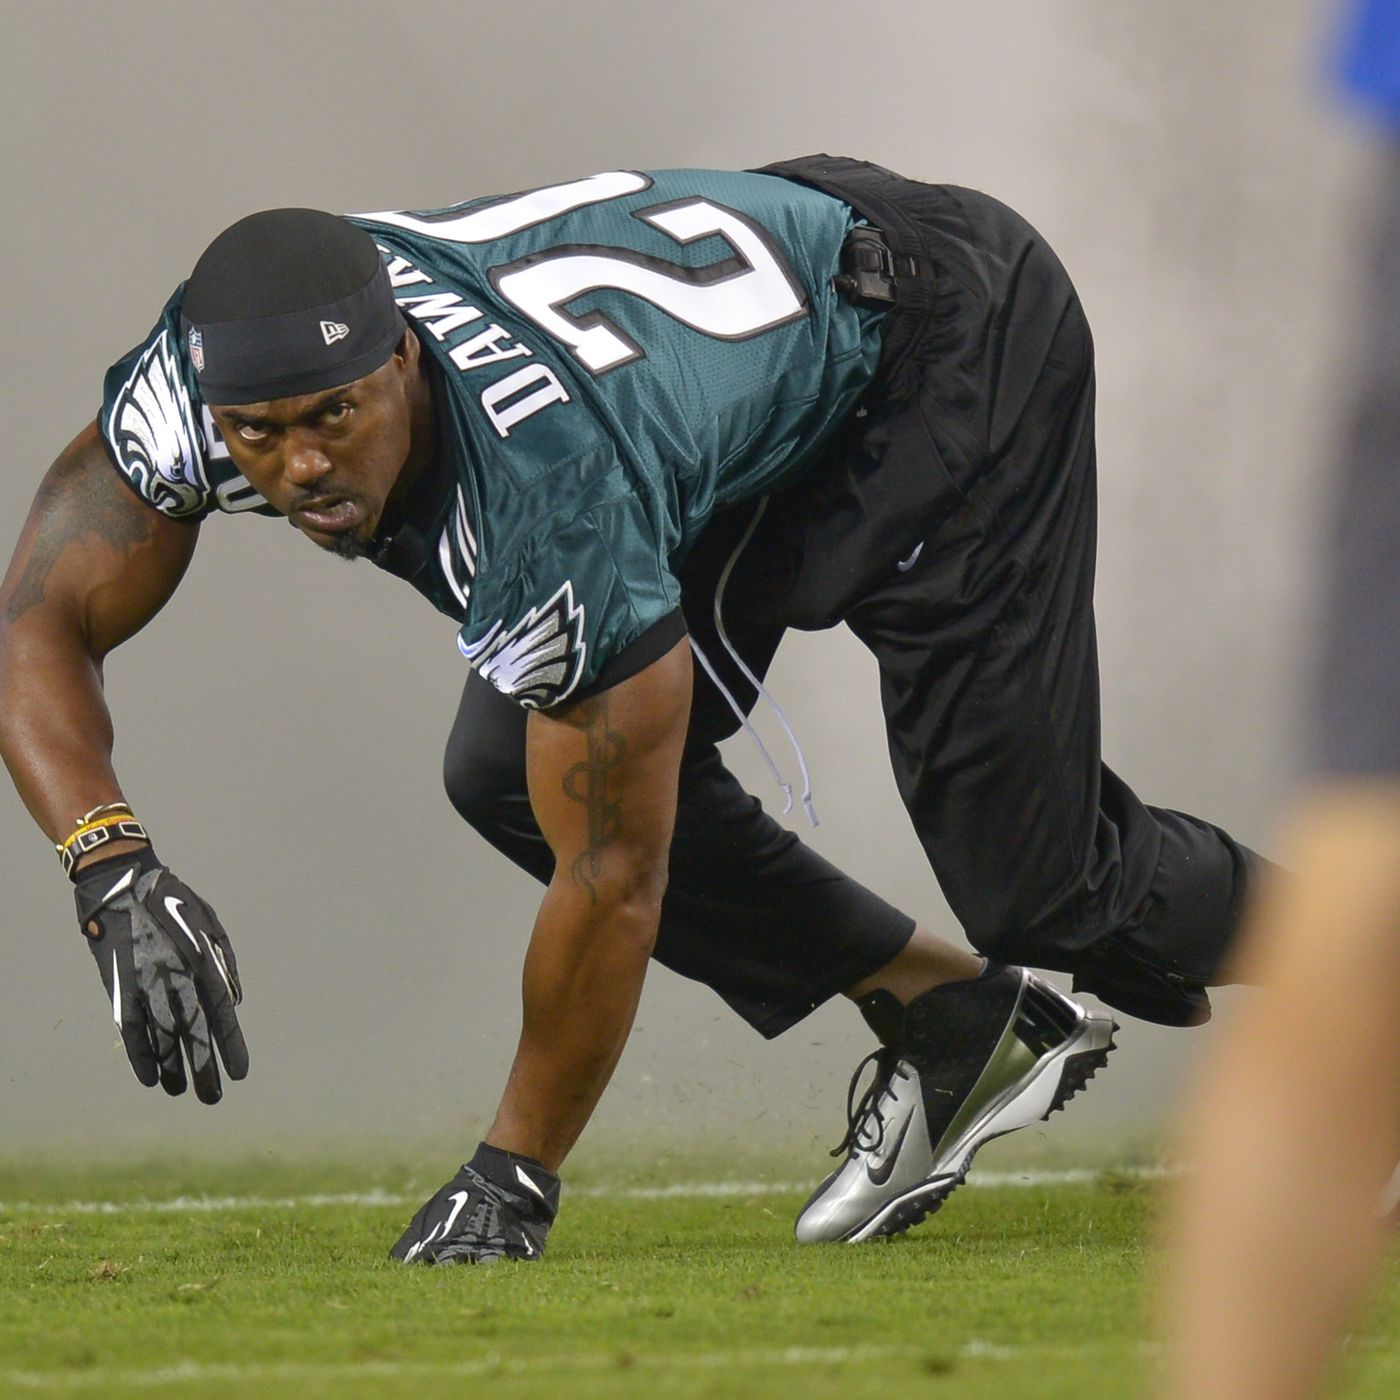 77c971d58d8 THESE EAGLES HYPE VIDEOS FEATURING BRIAN DAWKINS WILL GET YOU SUPER FIRED  UP FOR TODAY S PLAYOFF GAME